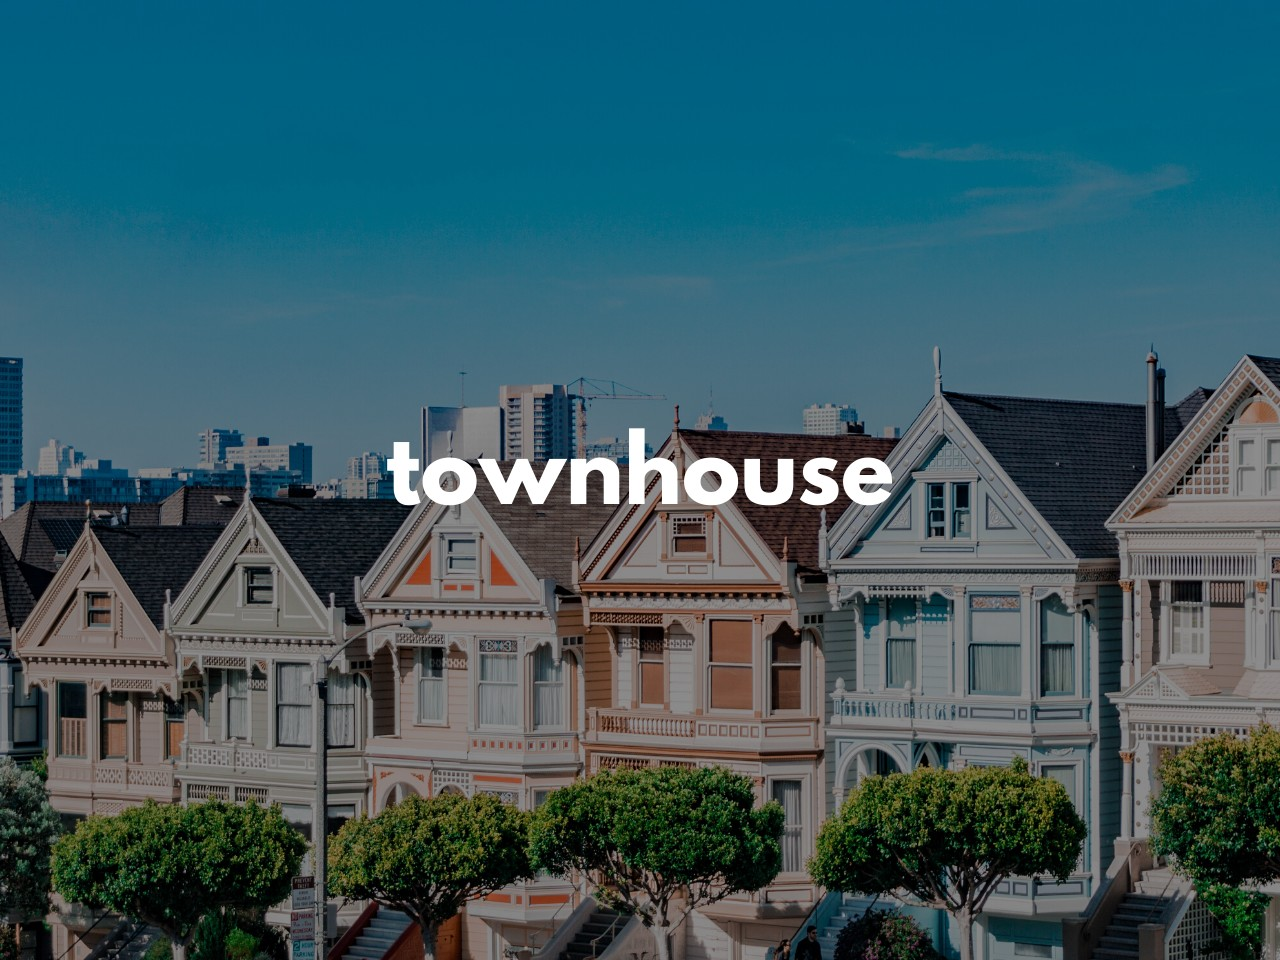 townhouse : 住宅地の家